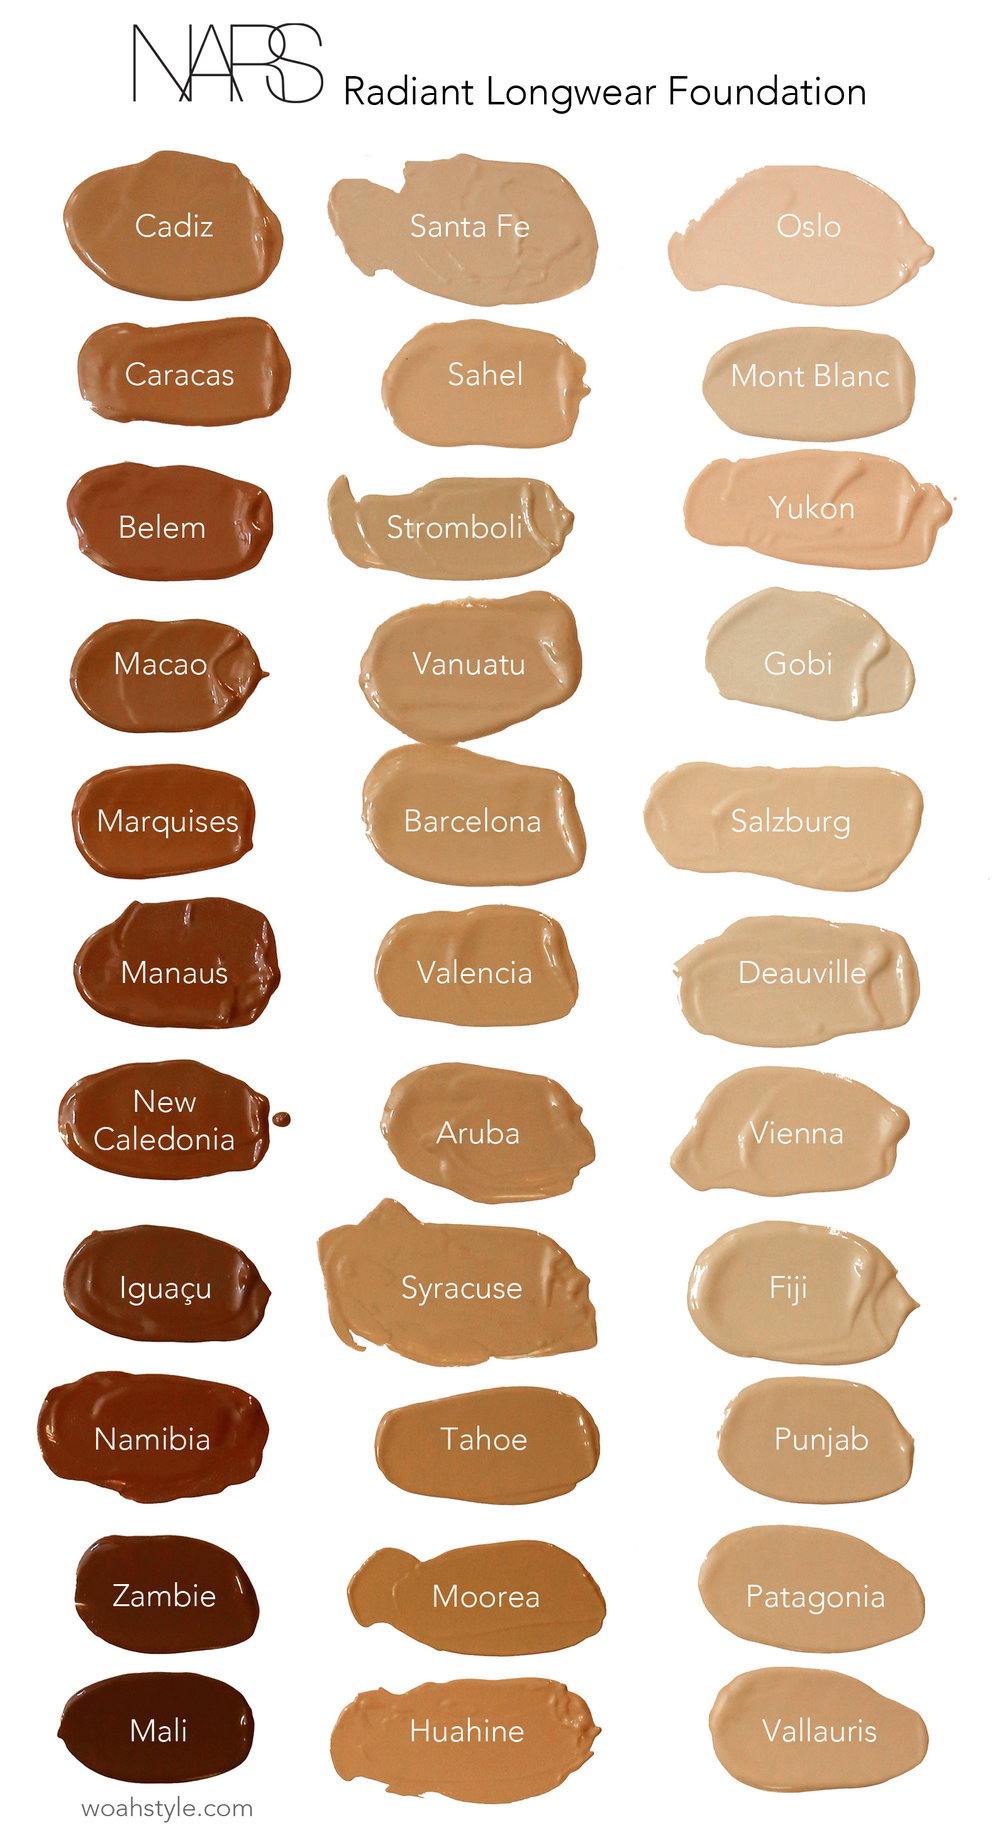 NARS Radiant Longwear Foundation Review and swatches - full collection- woahstyle.com-1.jpg